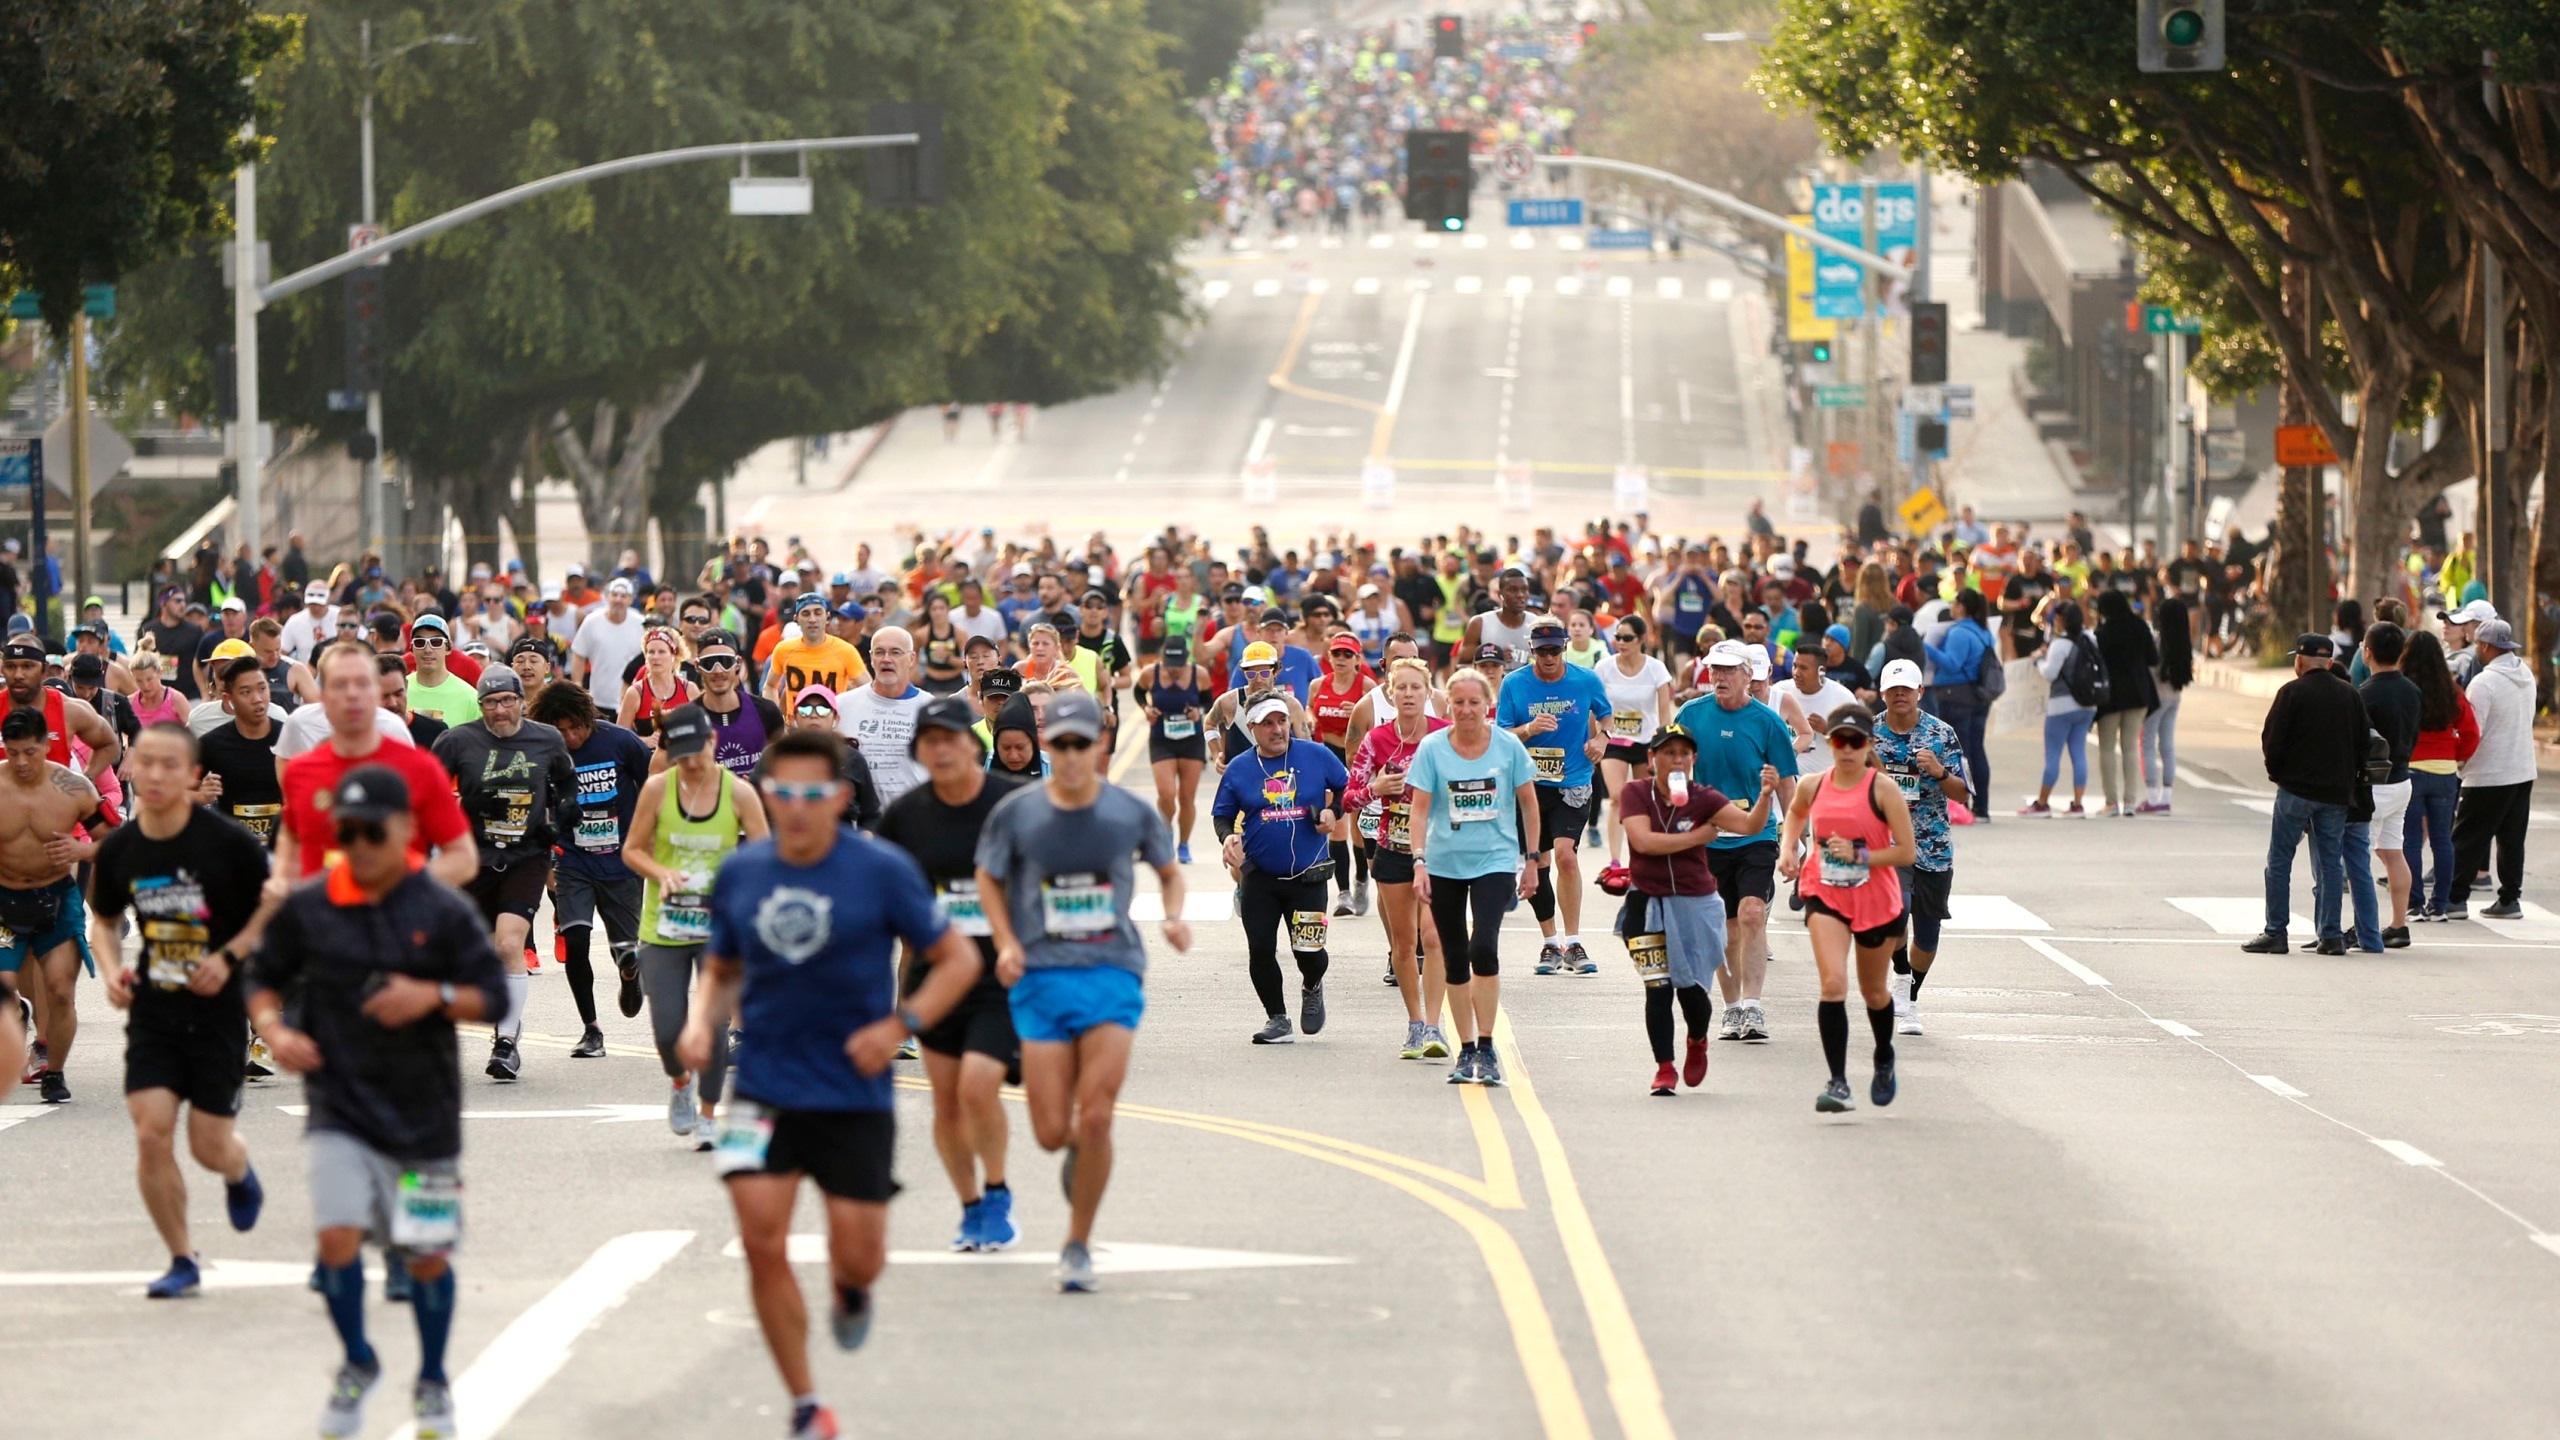 Participants run on First Street during the 2019 Skechers Performance Los Angeles Marathon on March 24, 2019 in Los Angeles. (Katharine Lotze/Getty Images)